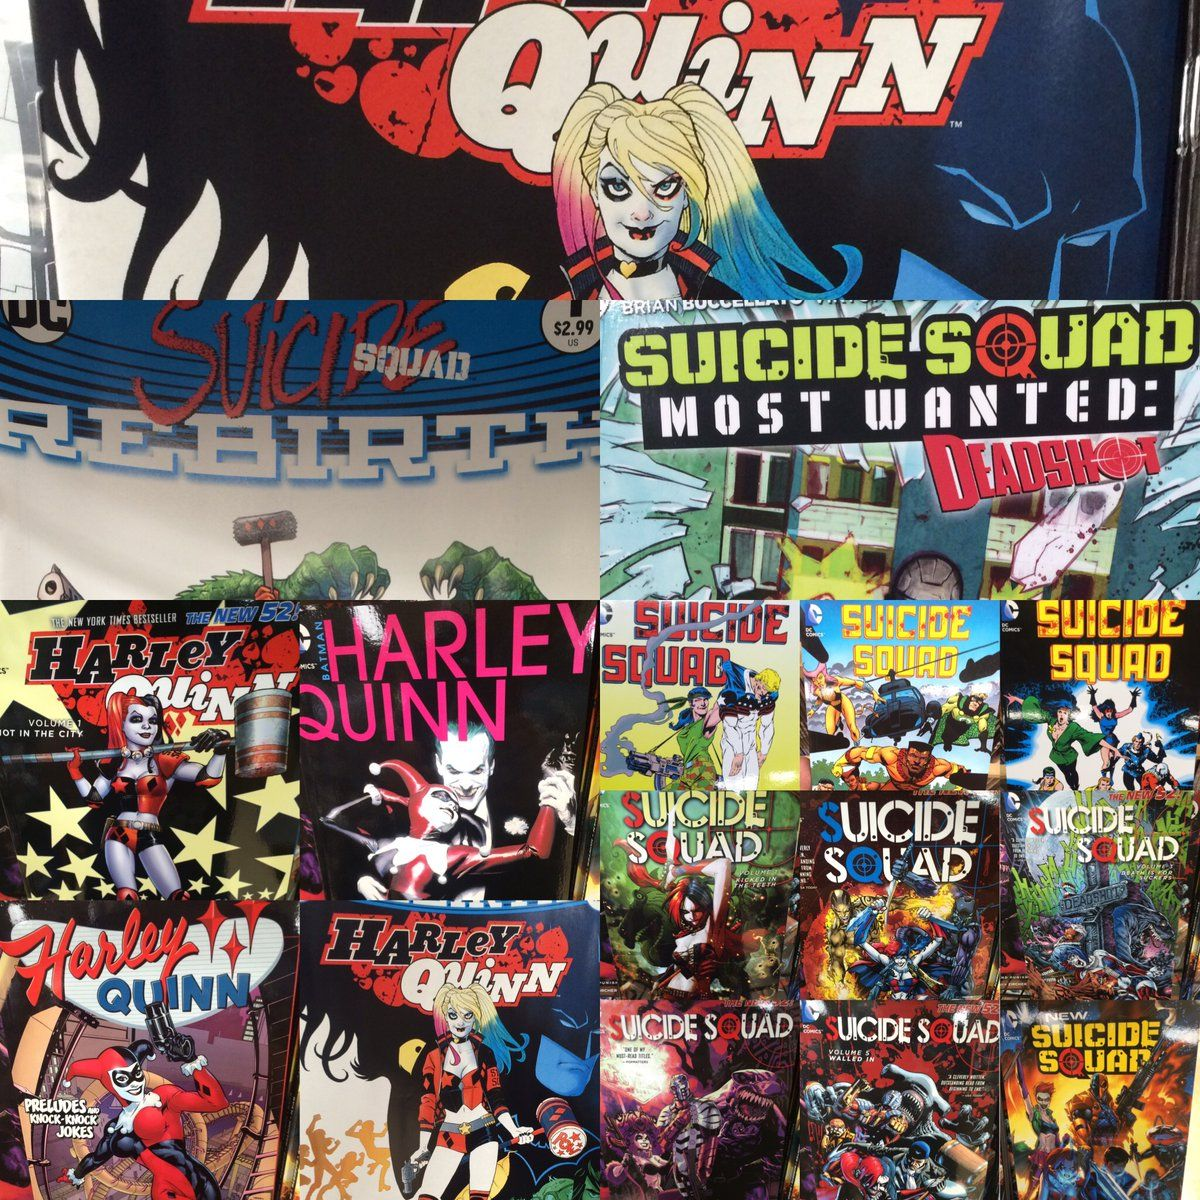 Going to see #SuicideSquad? Be sure to pick up the source material! In-Store or online: http://ow.ly/jEGg302XJVb